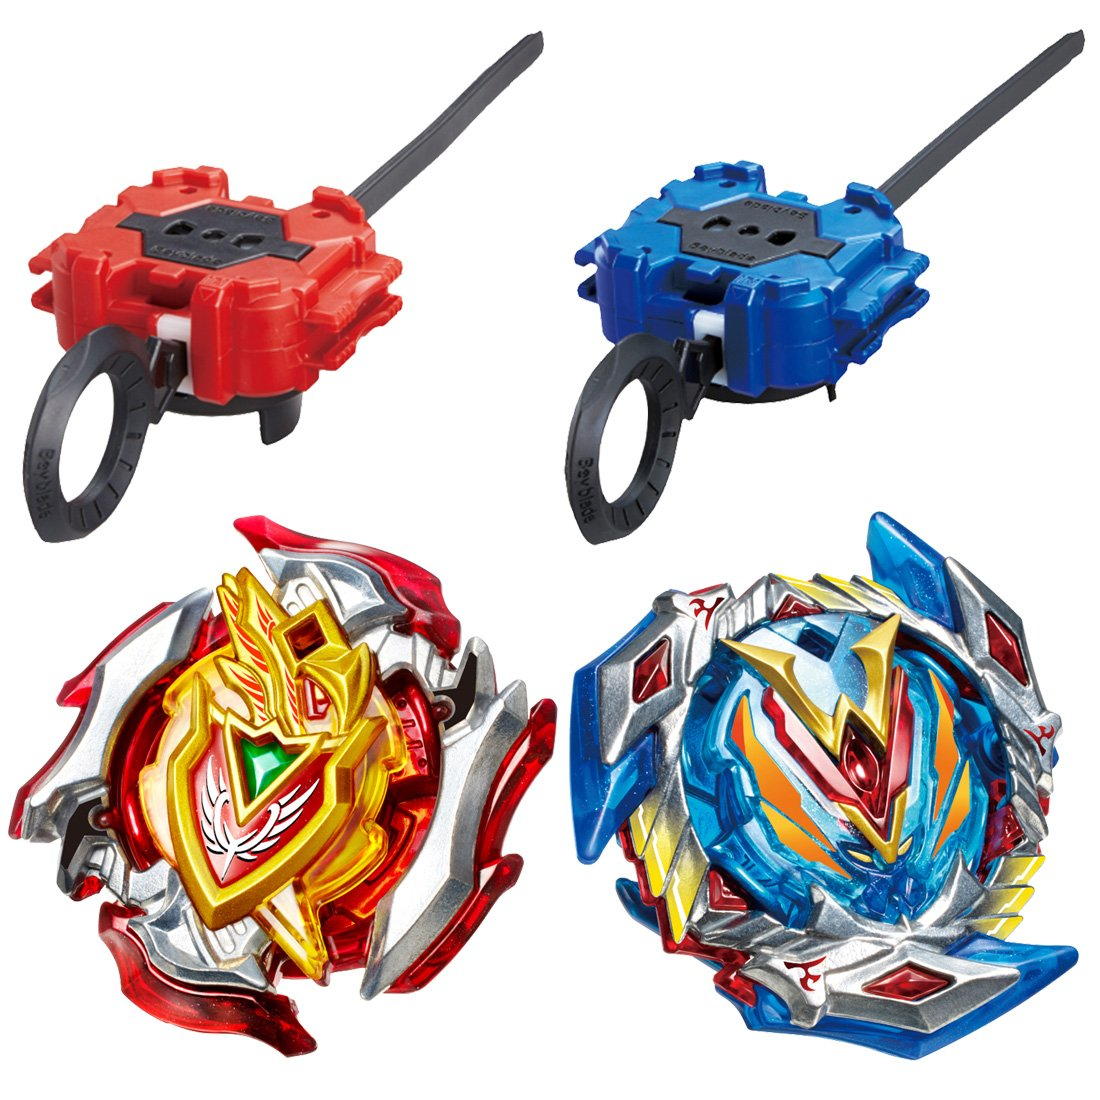 Beyblade Burst B-107 Beyblade Super Z Battle Set Takara Tomy